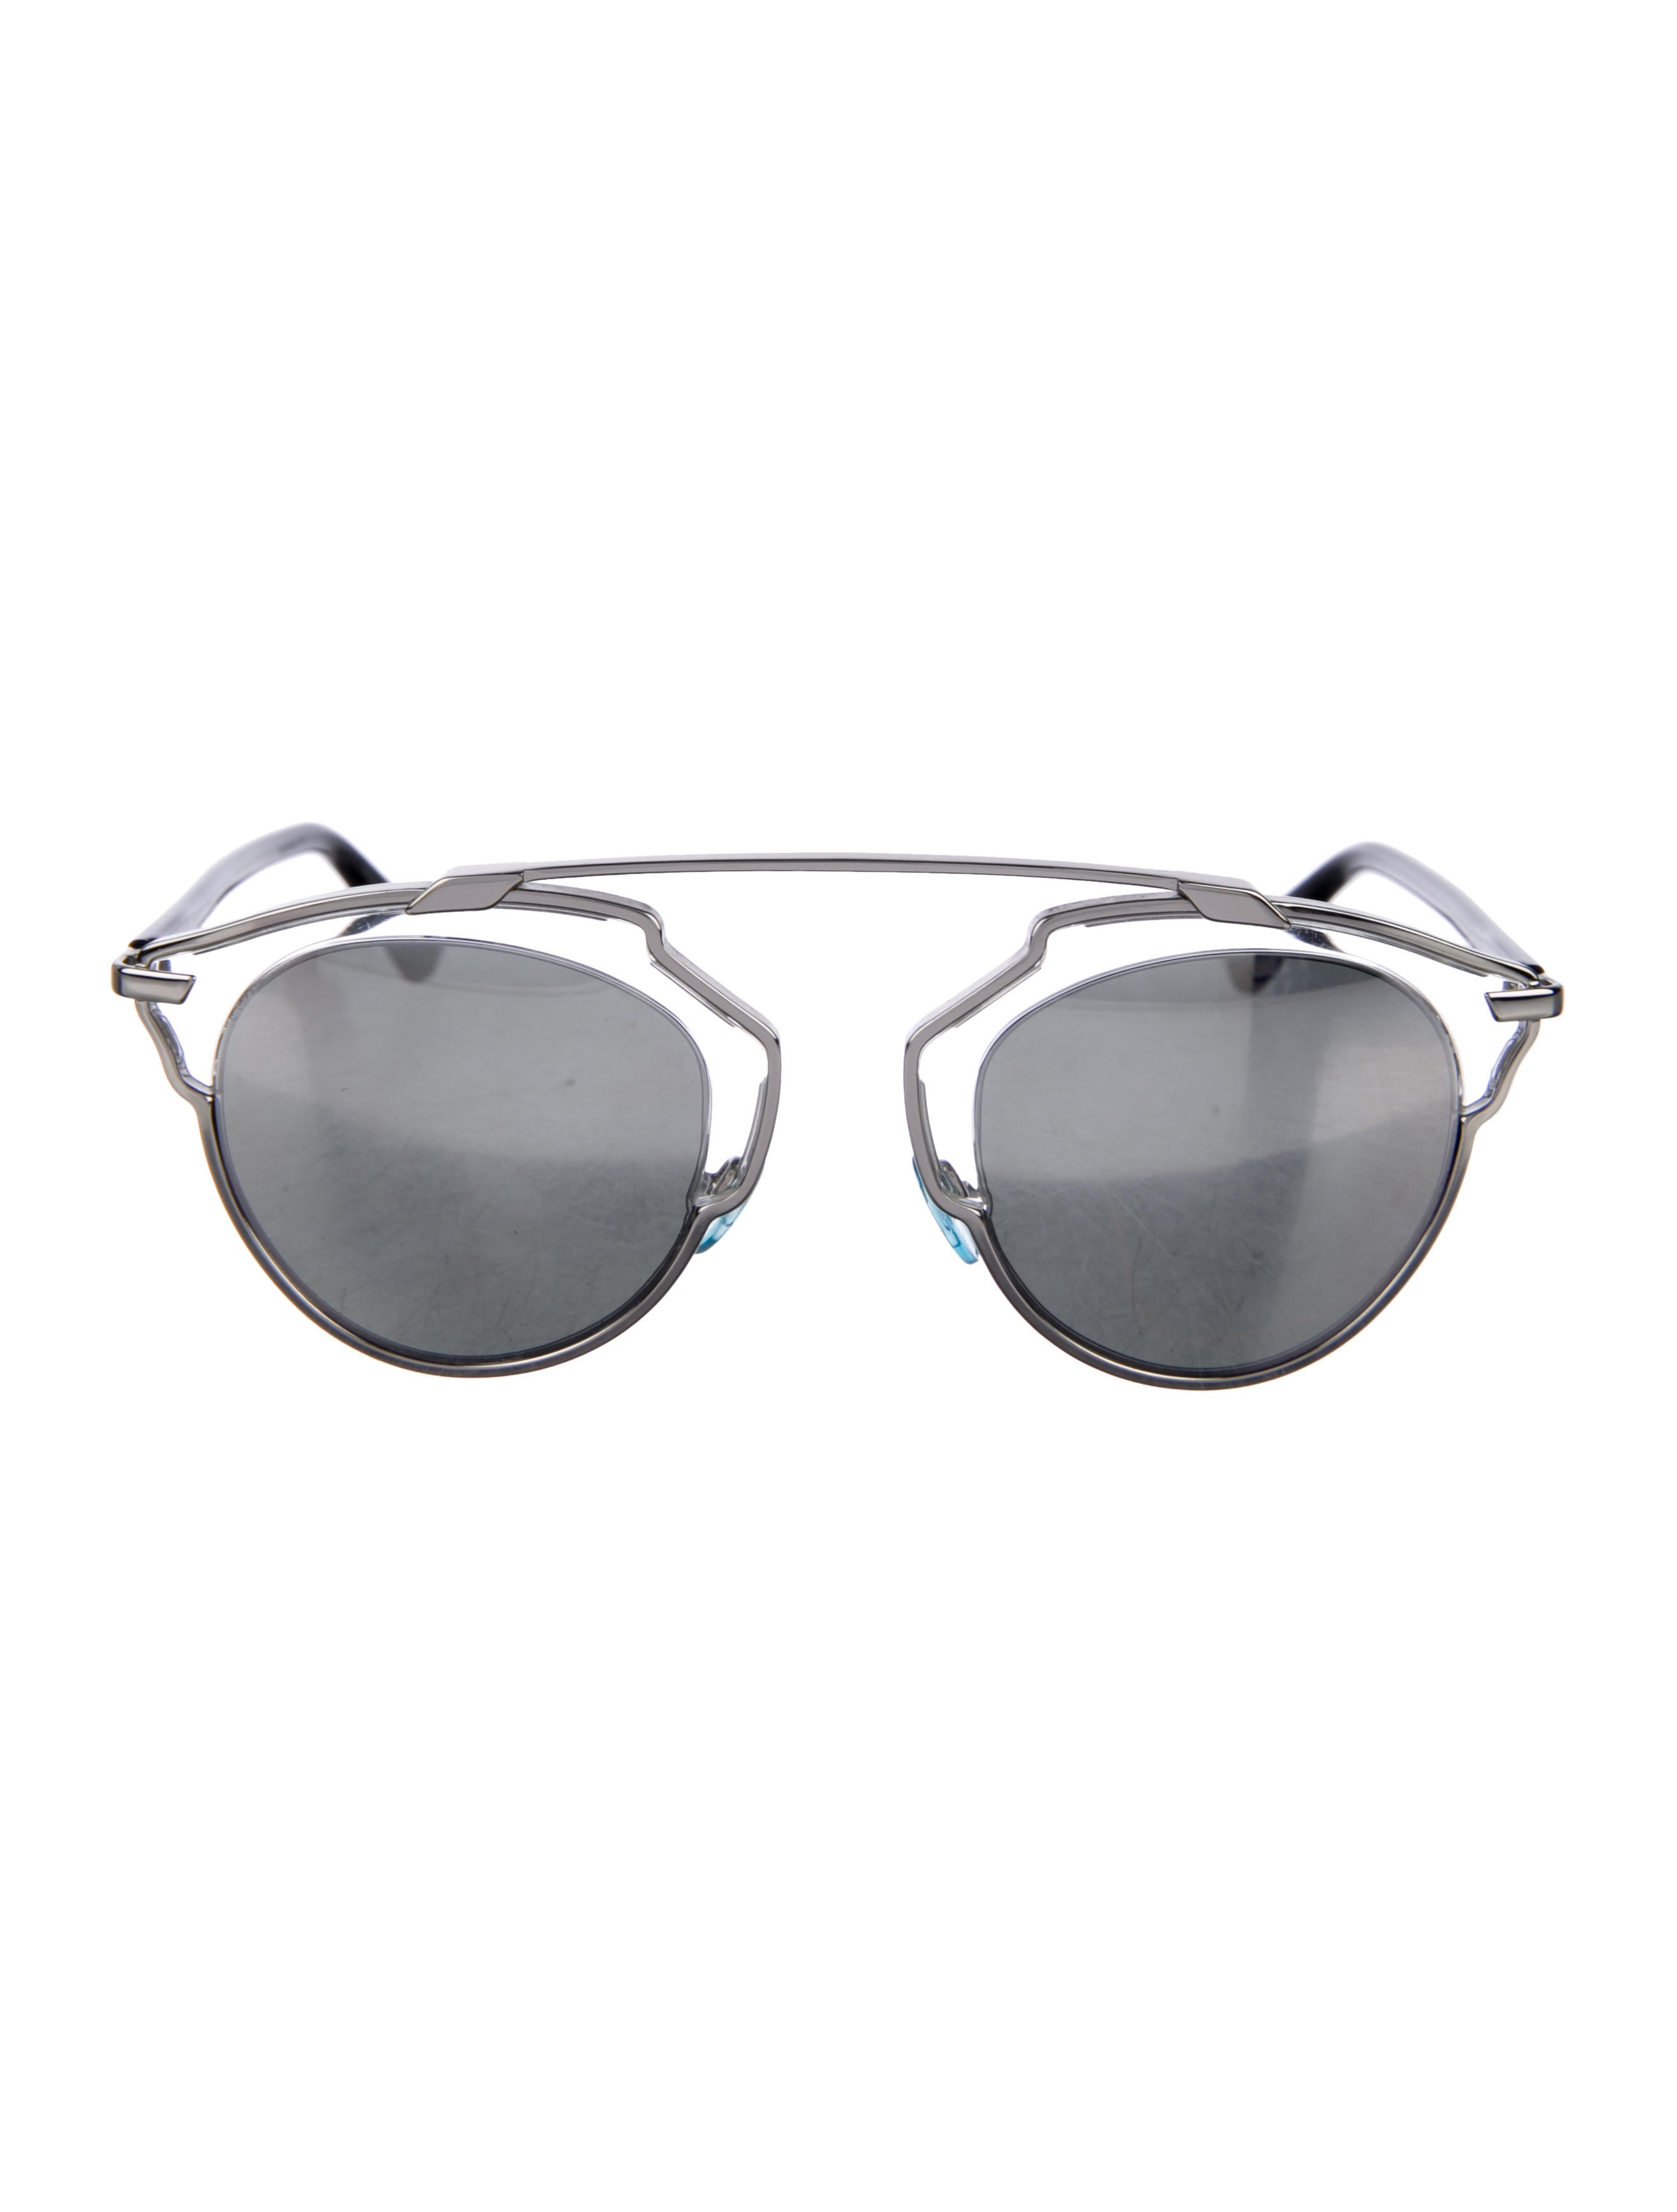 e90bb92bebd3 Christian Dior So Real Tinted Sunglasses - Accessories - CHR77648 ...